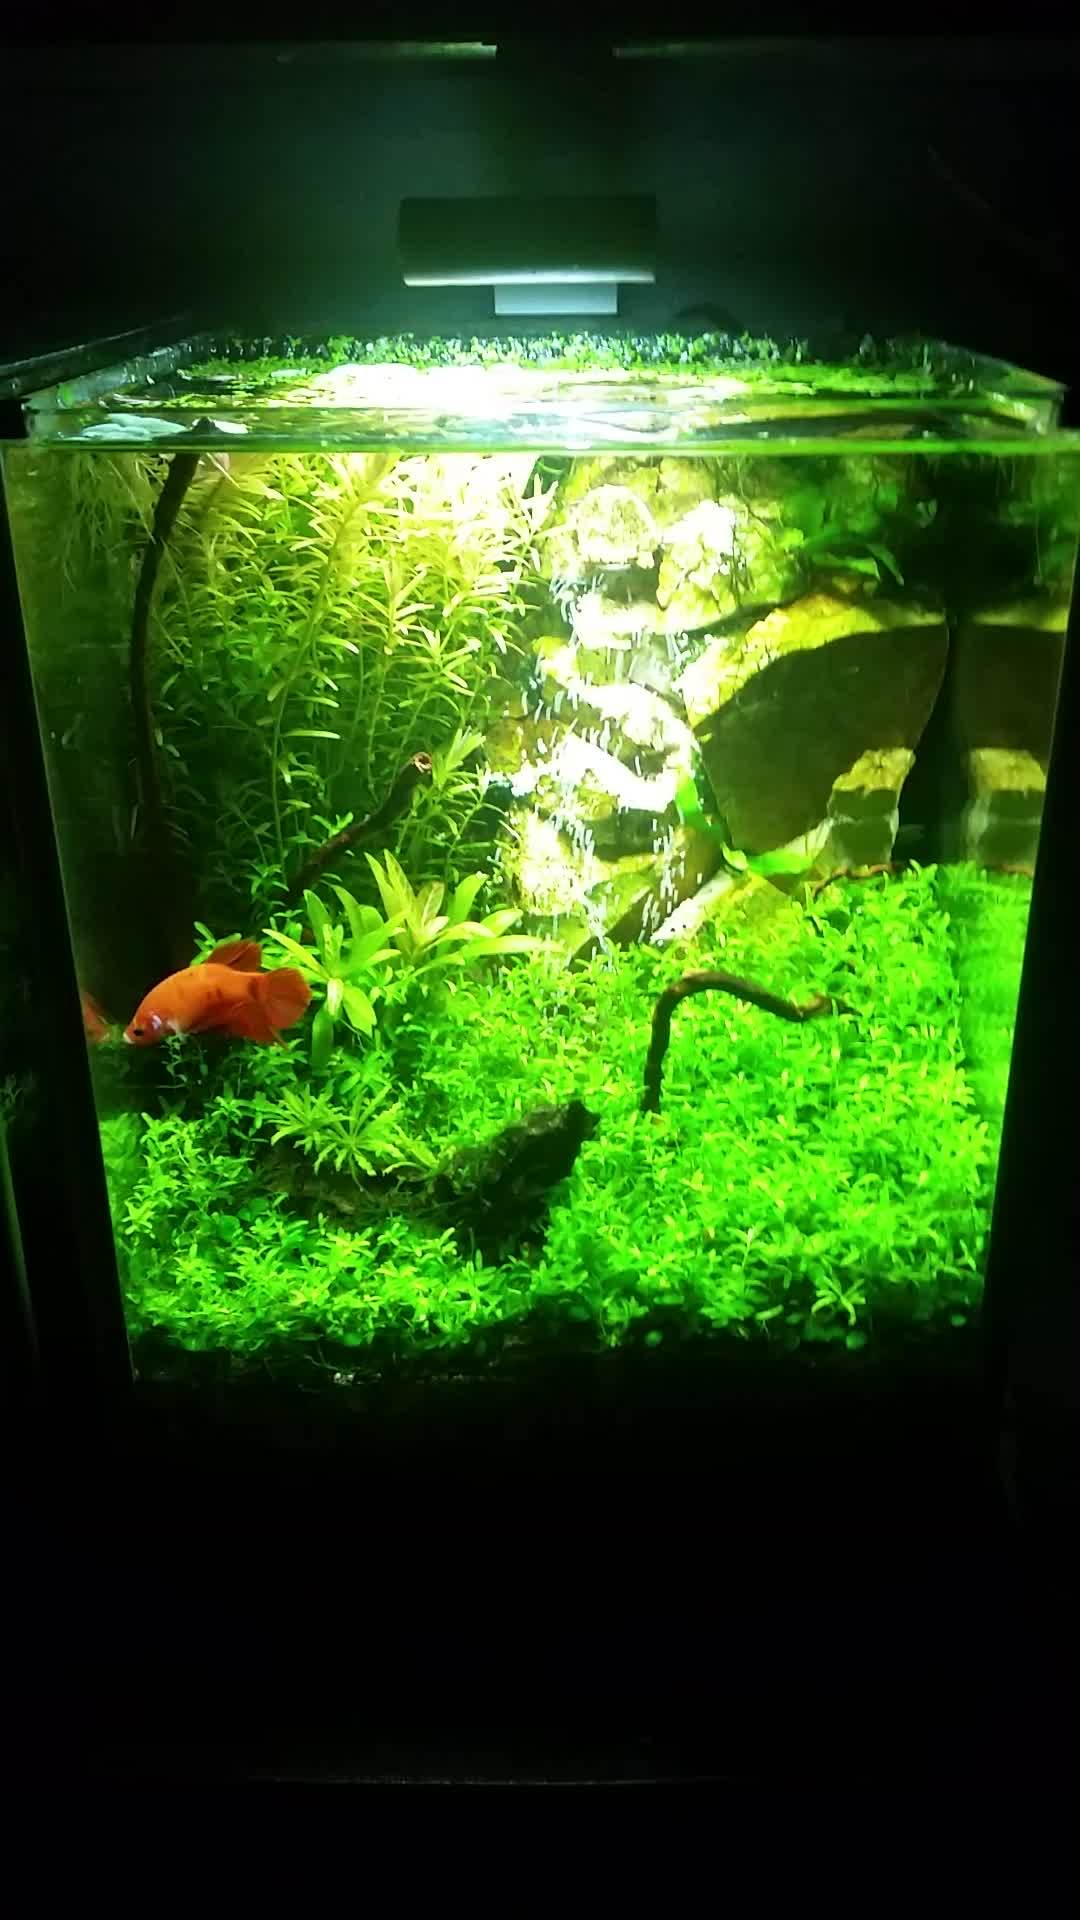 aquariums, bettafish, plantedtank, Water in a Fluval Spec III Aquarium. GIFs